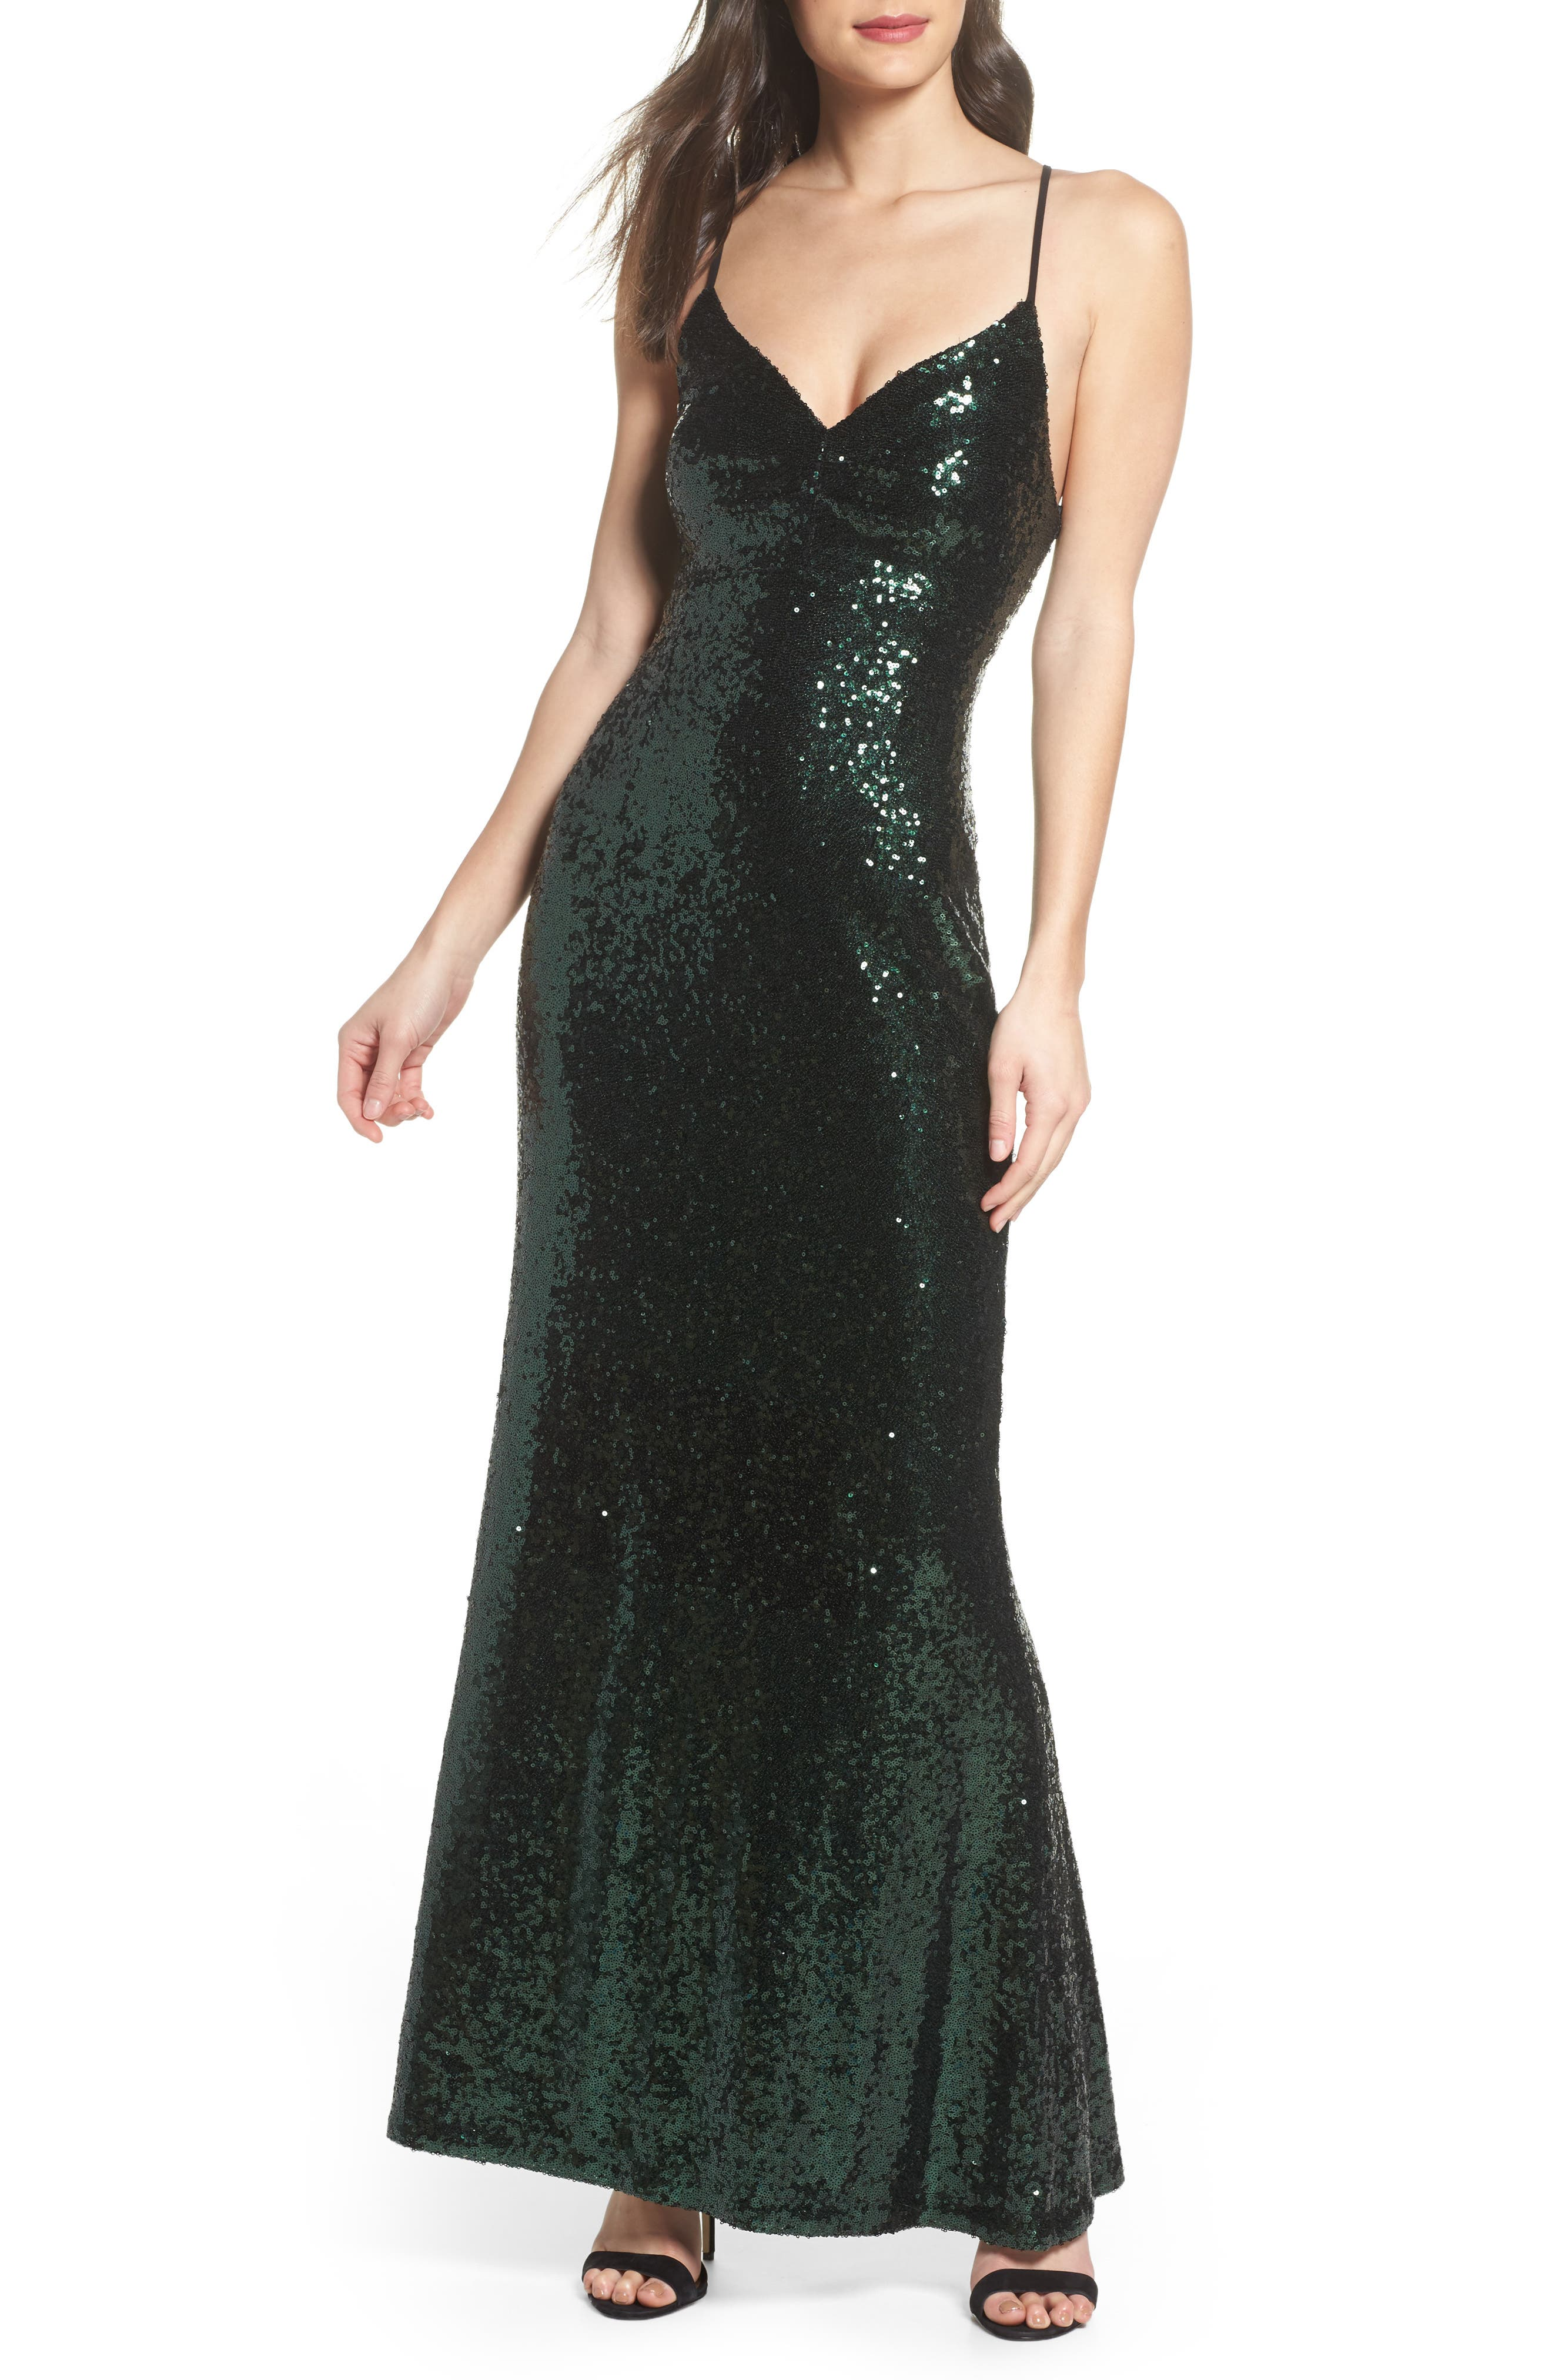 Morgan & Co. Keyhole Back Sequin Gown, /10 - Green